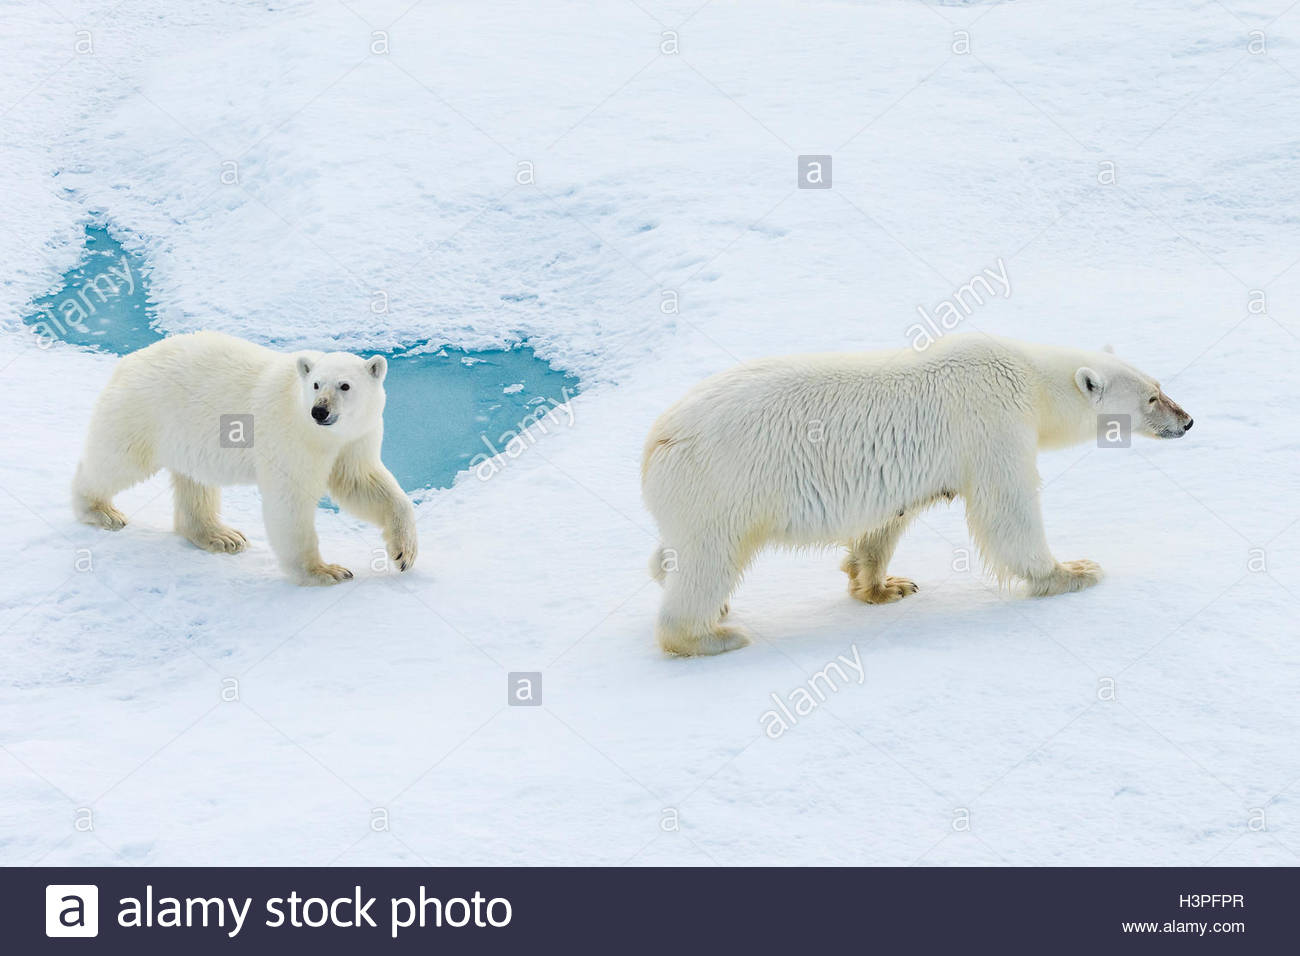 A polar bear cub and its mother (Ursus maritimus) wander across pack ice in the Canadian Arctic. Stock Photo